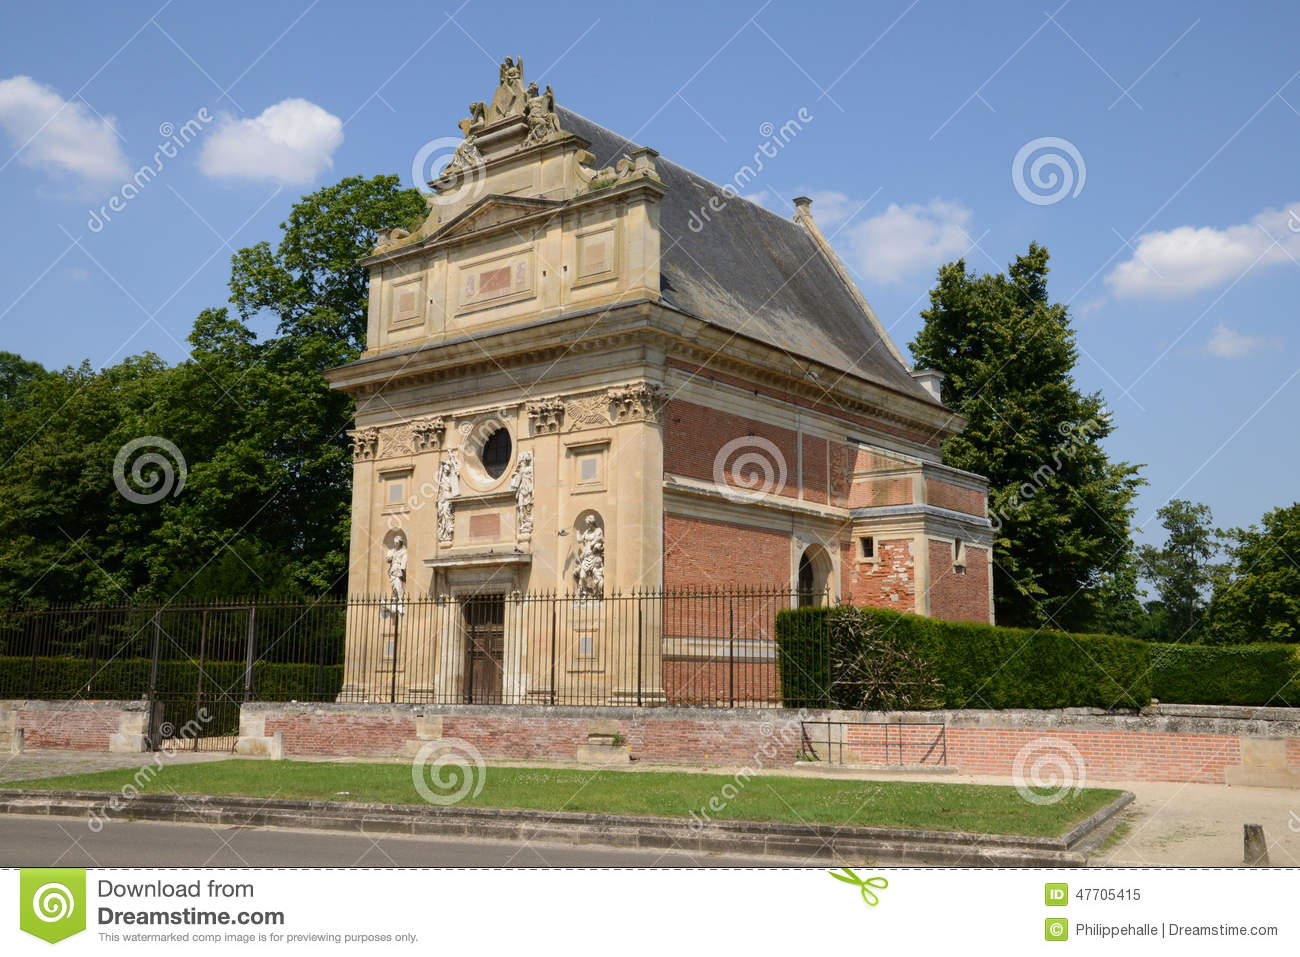 France The Picturesque City Of Anet Stock Photo Image 47705415